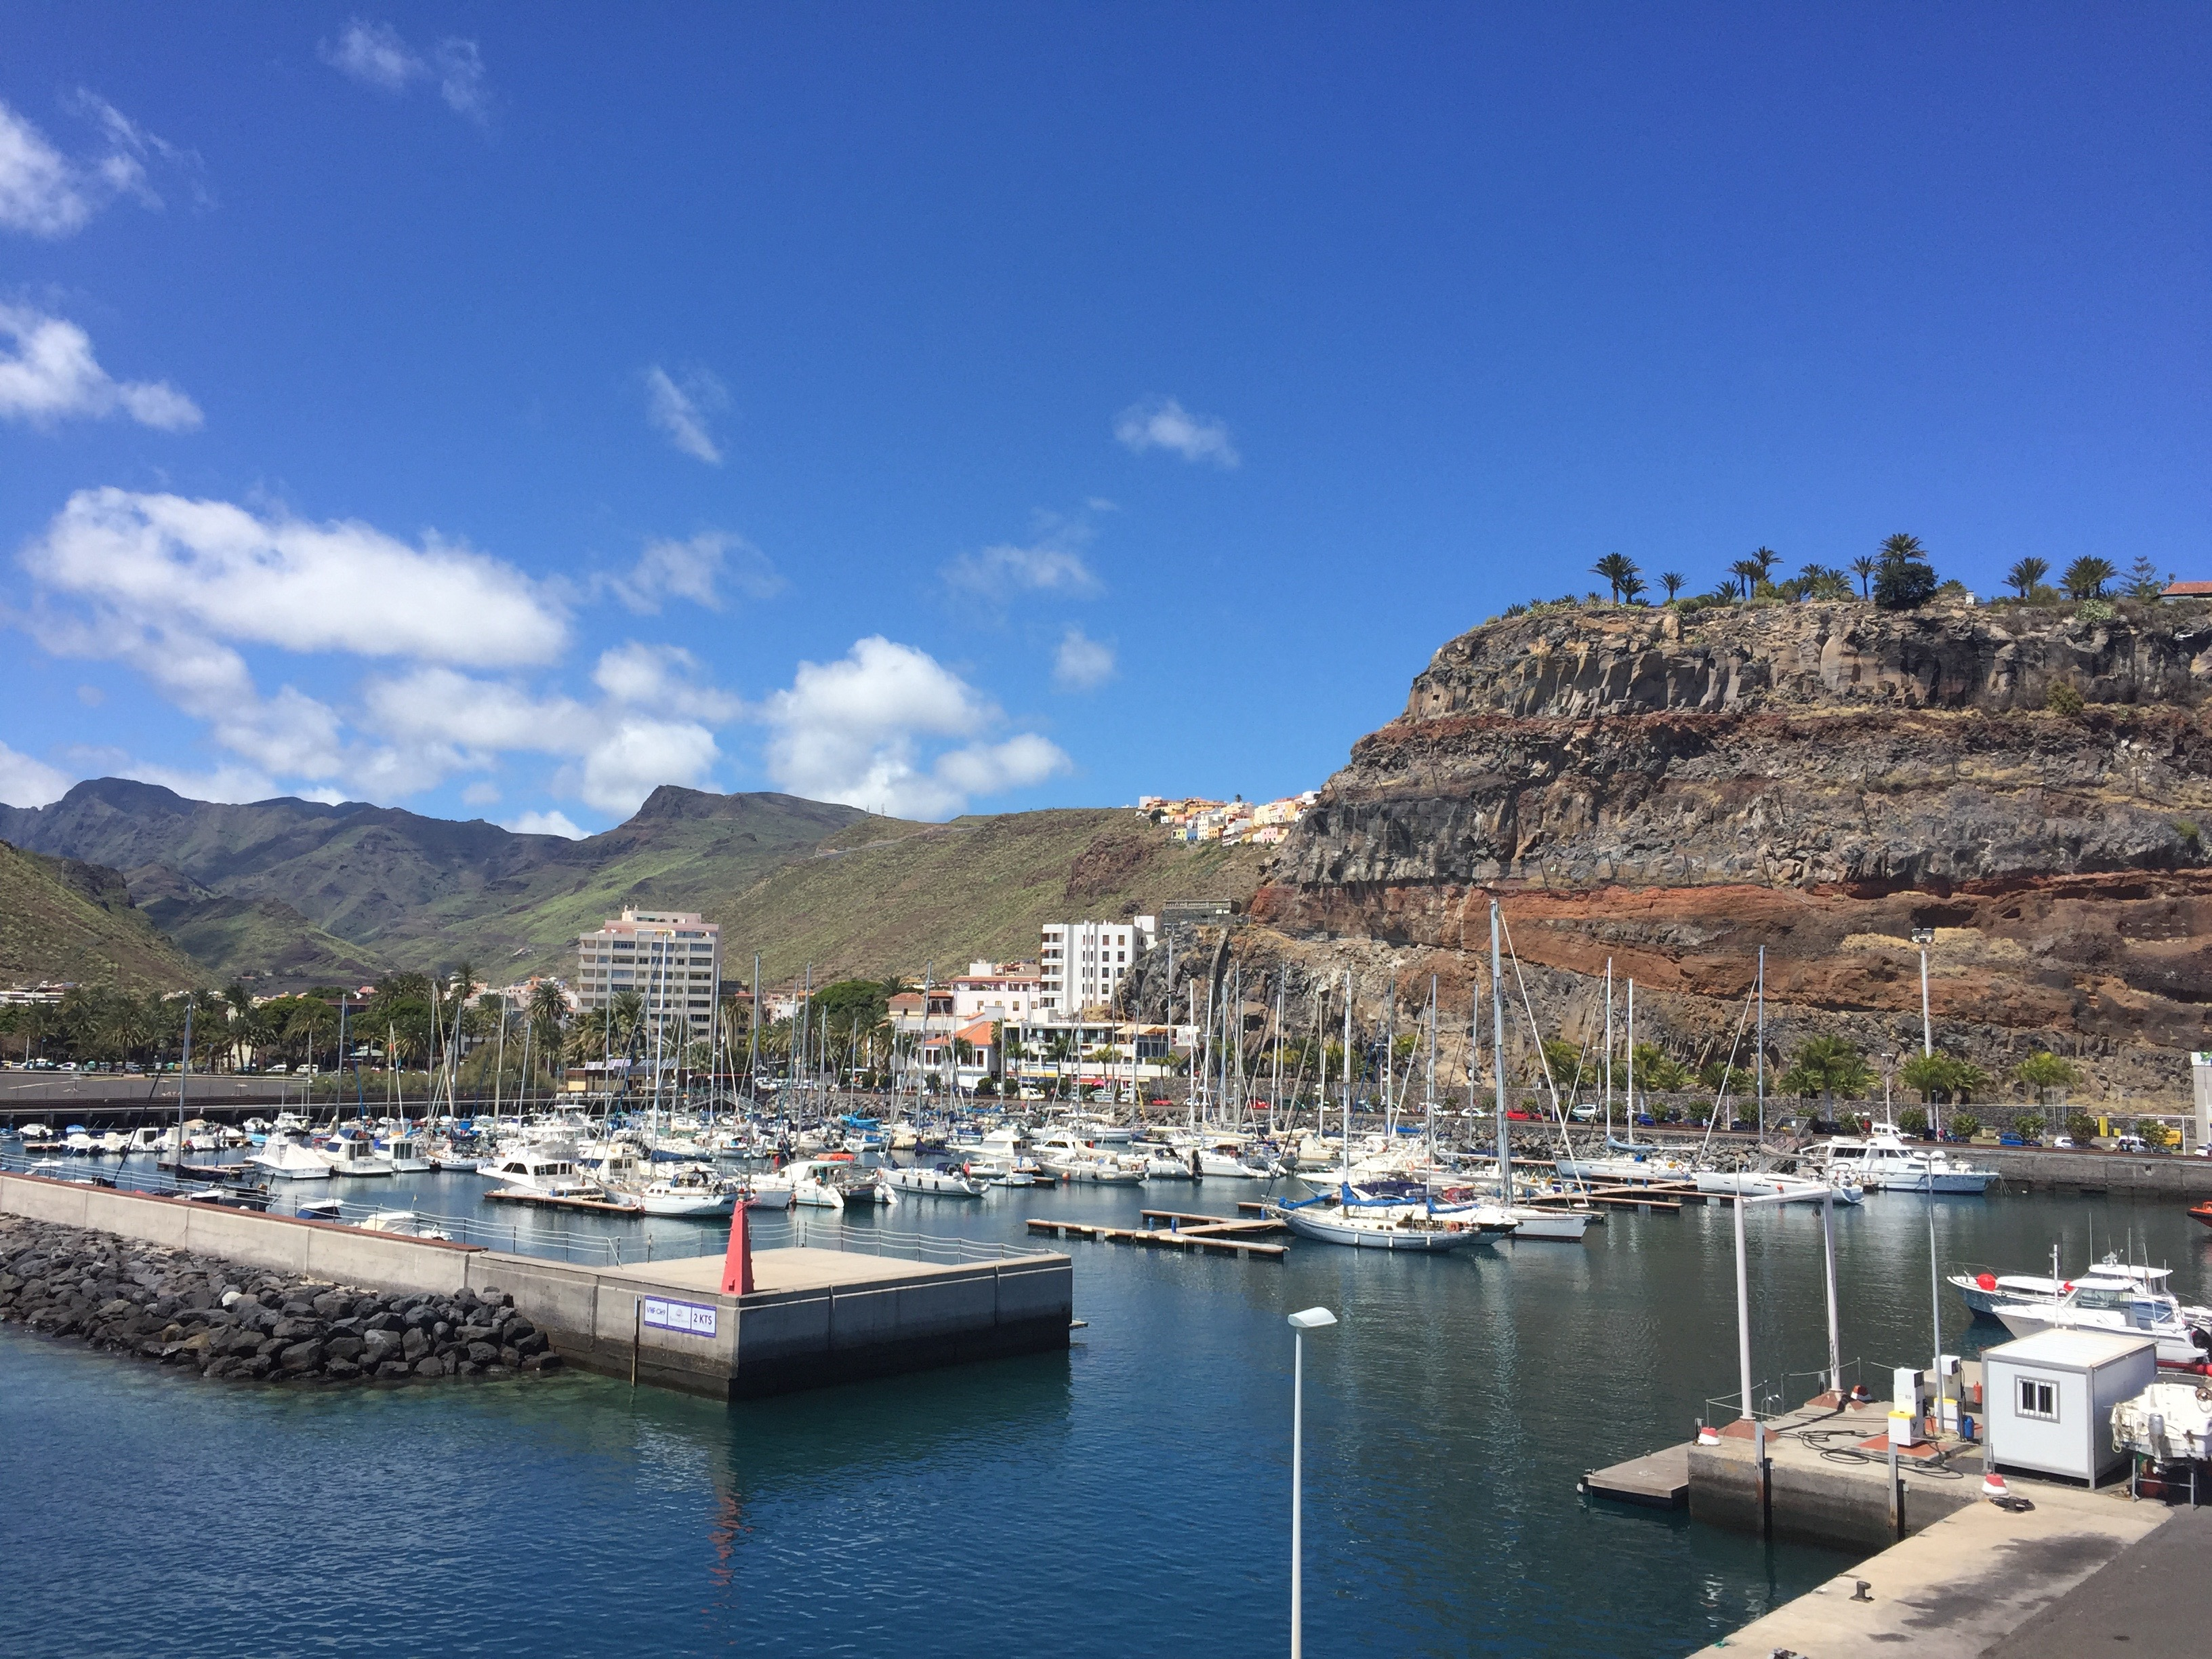 Marina in the Canaries